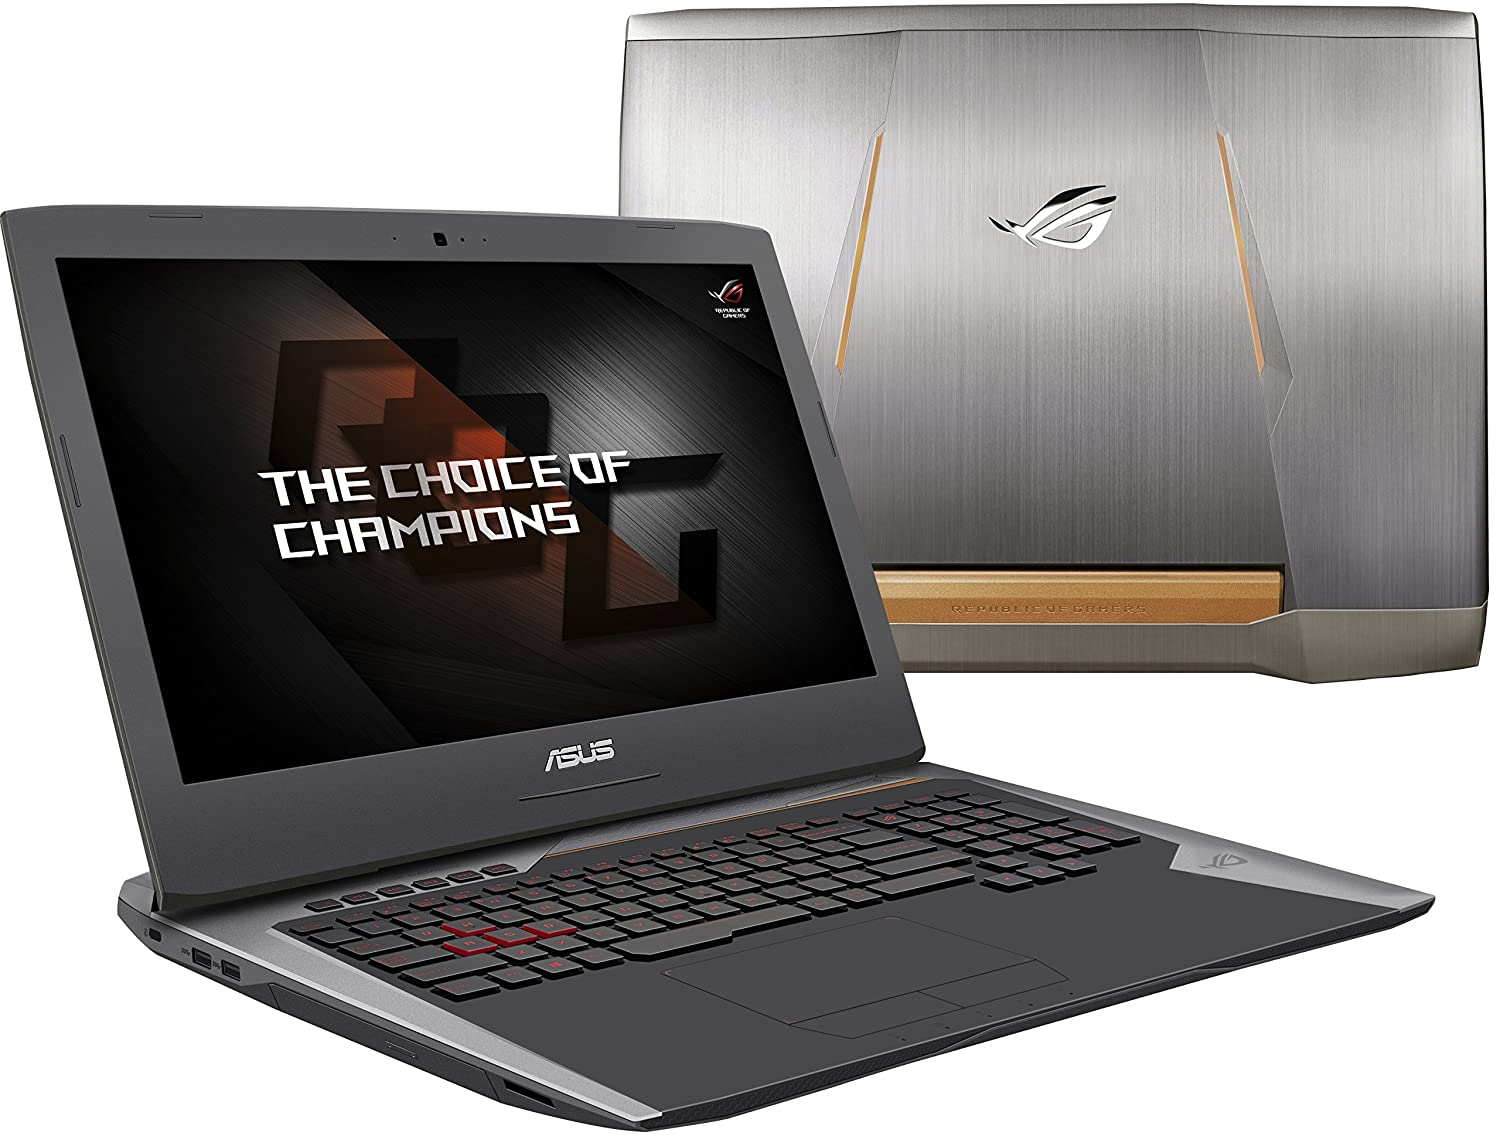 ASUS ROG G752VY-DH72 17-Inch Gaming Laptop